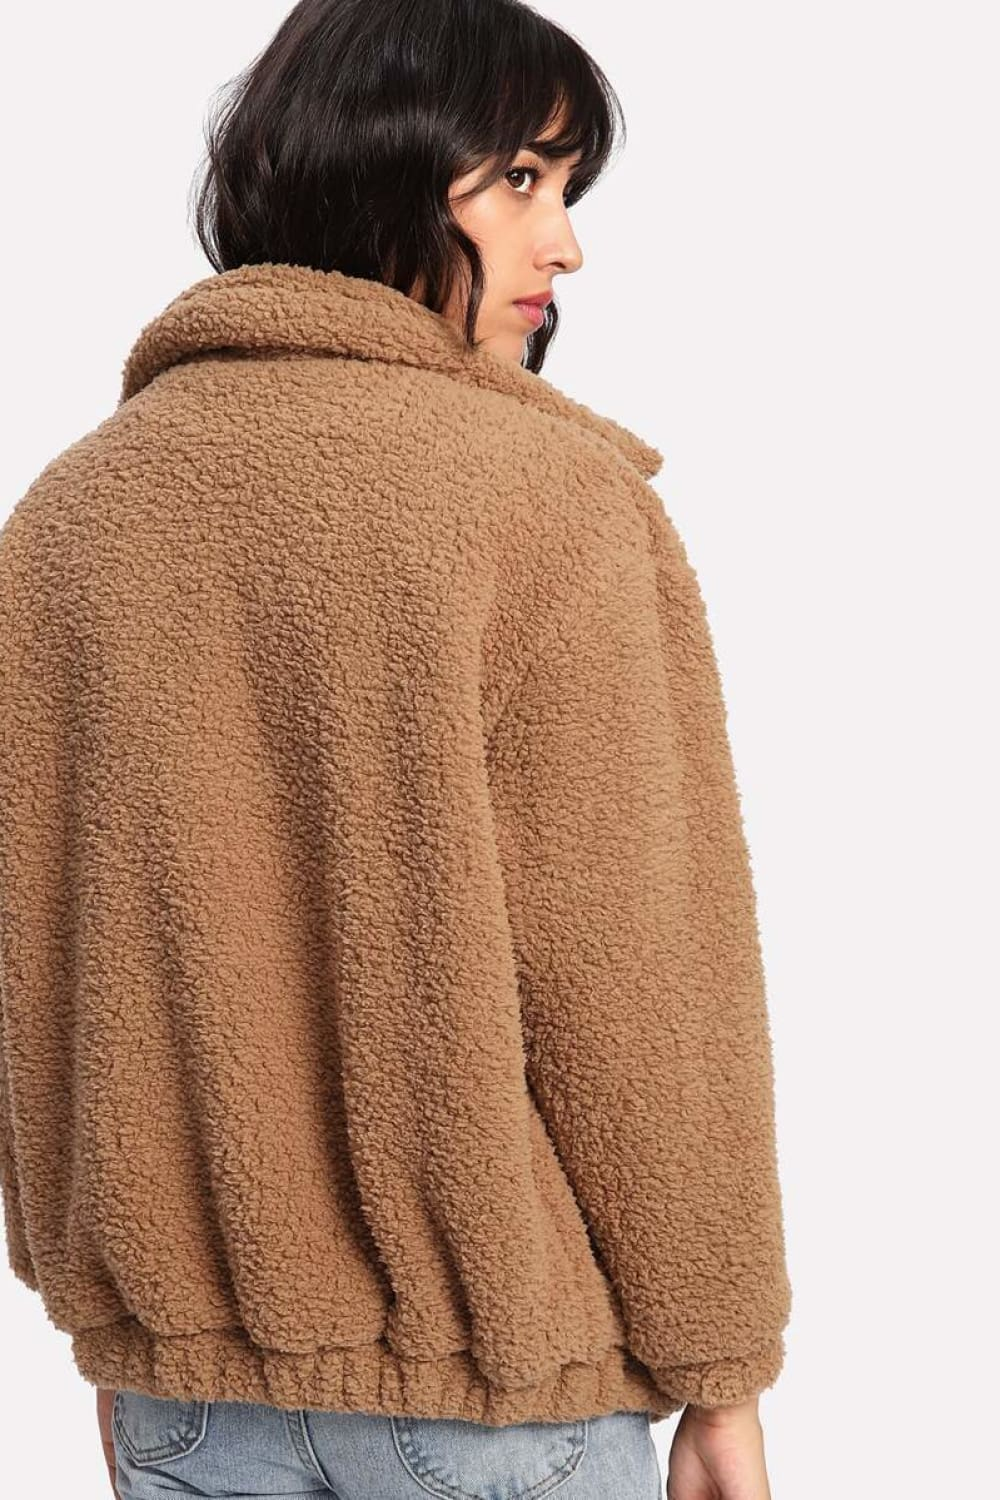 Camel Teddy Coat - Outerwear - Evan & Jane